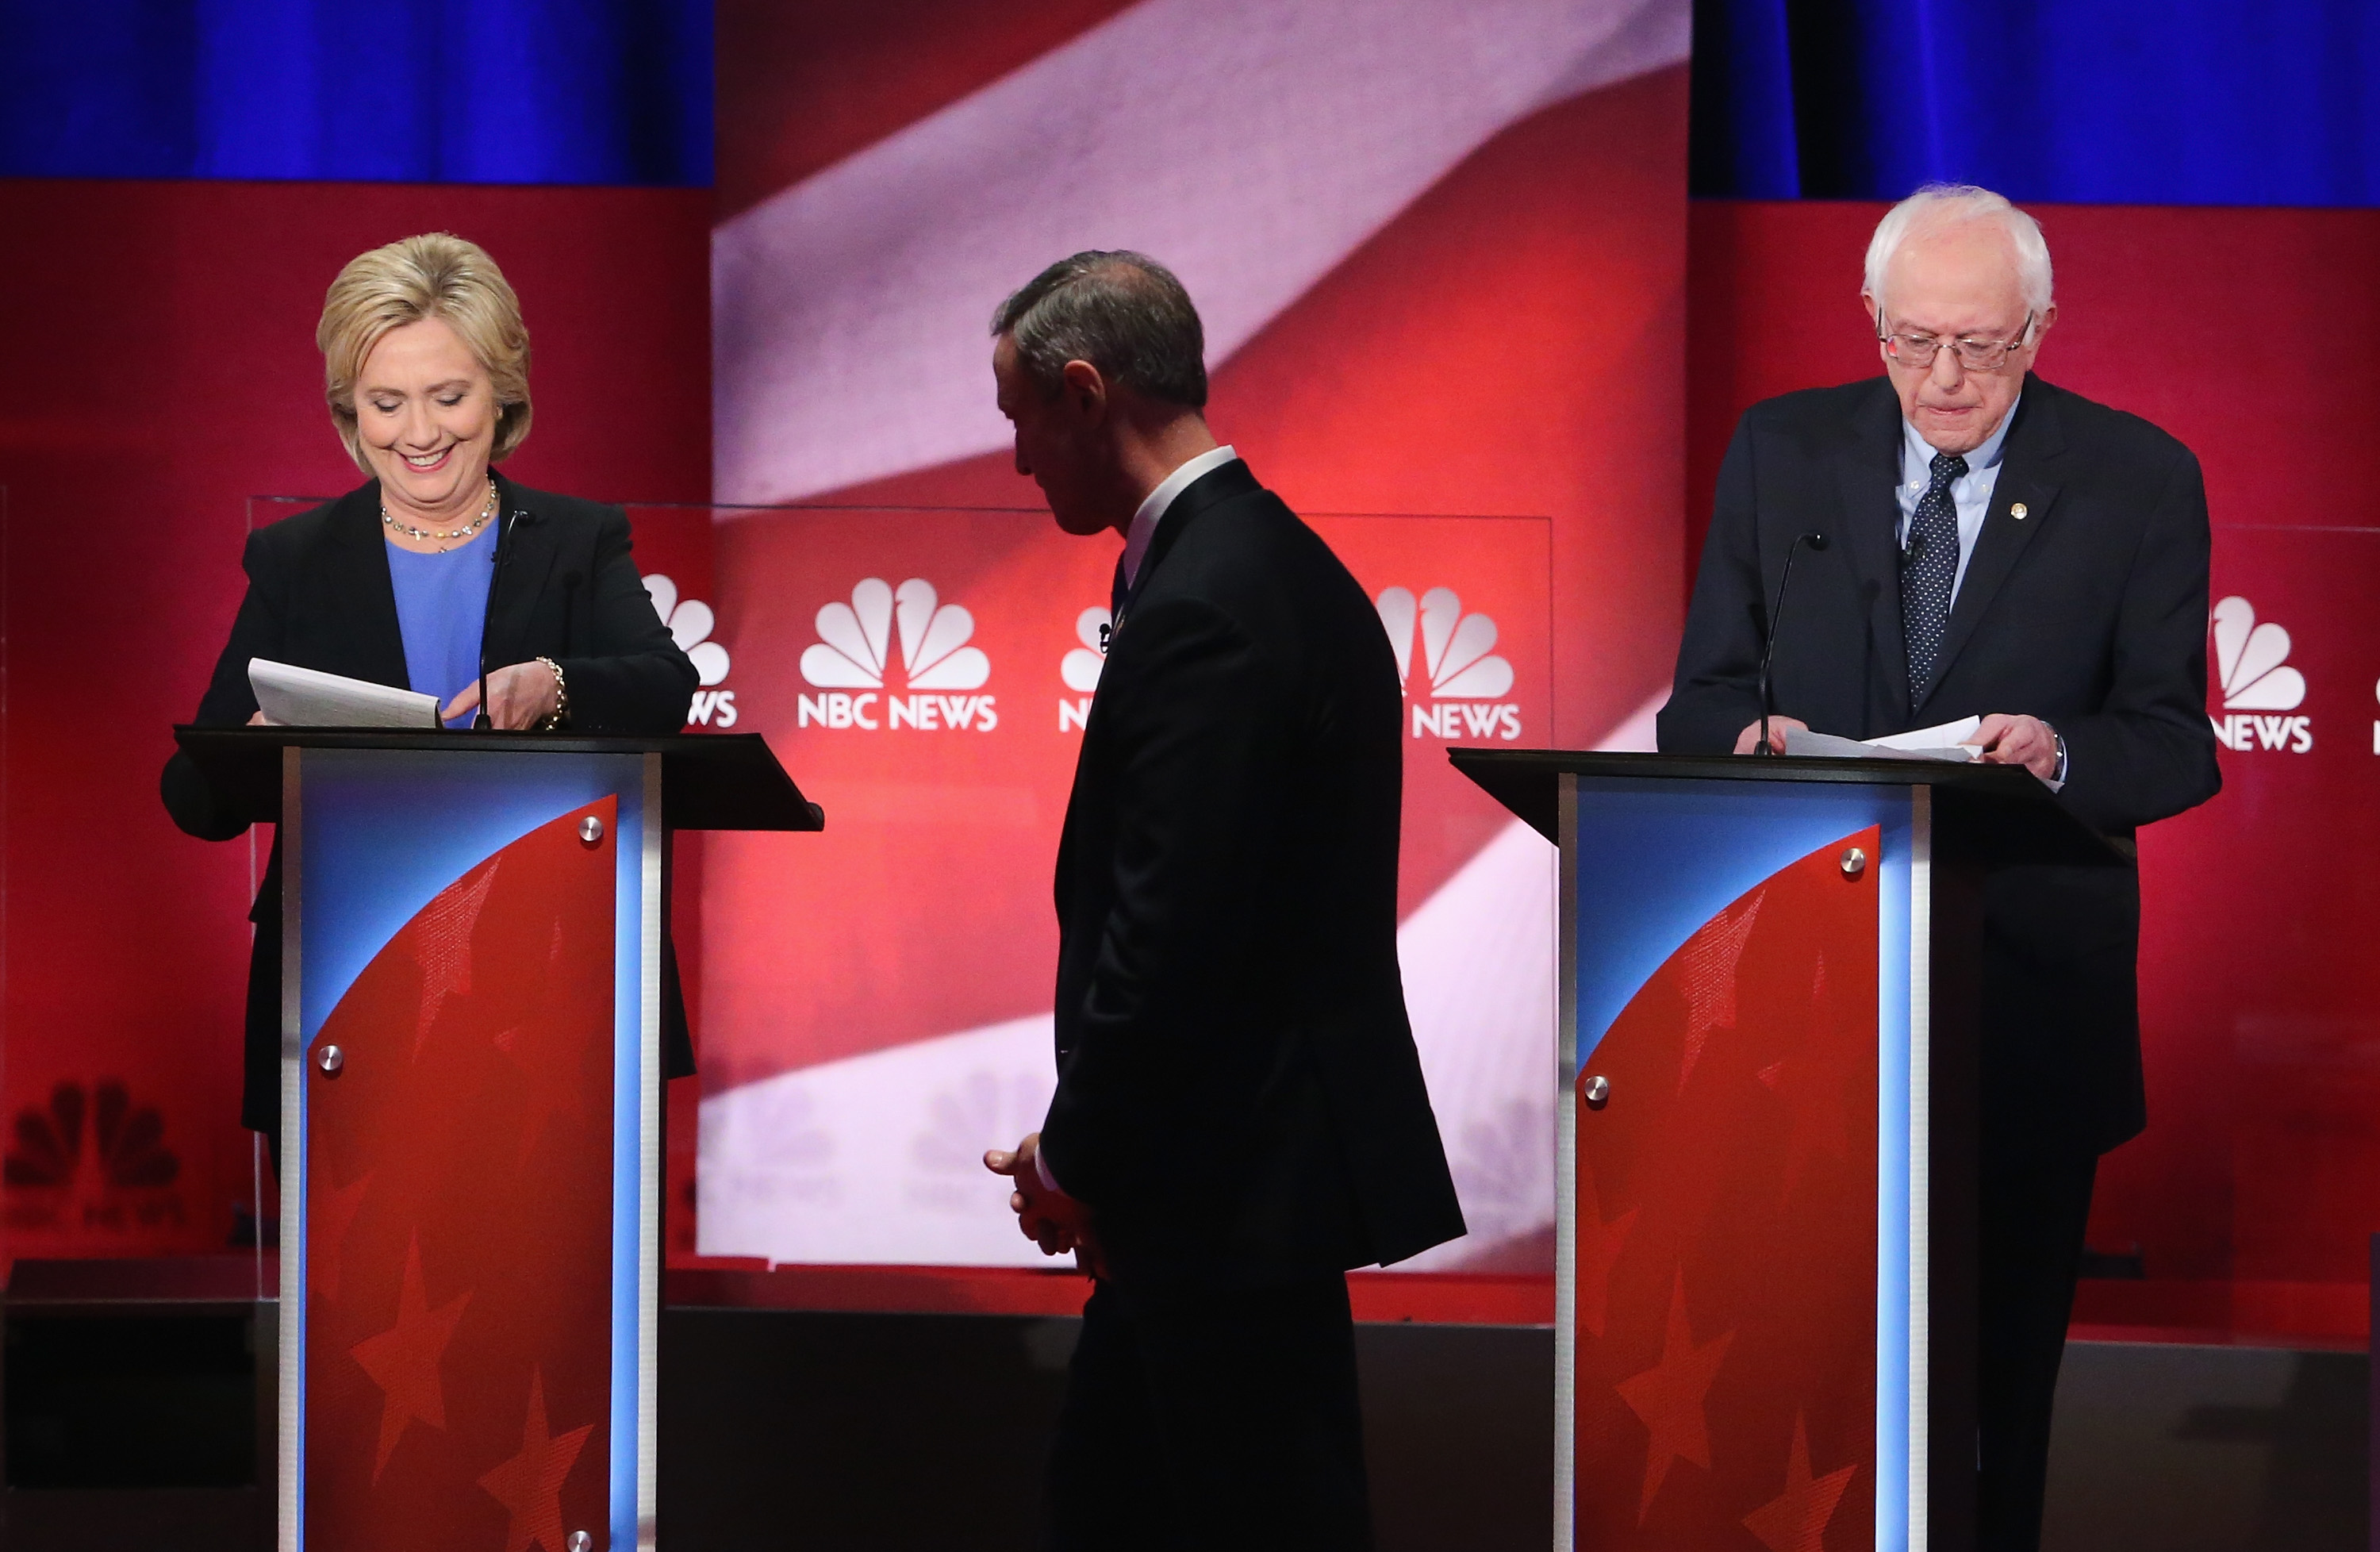 3 winners and 2 losers from Sunday night's Democratic presidential debate